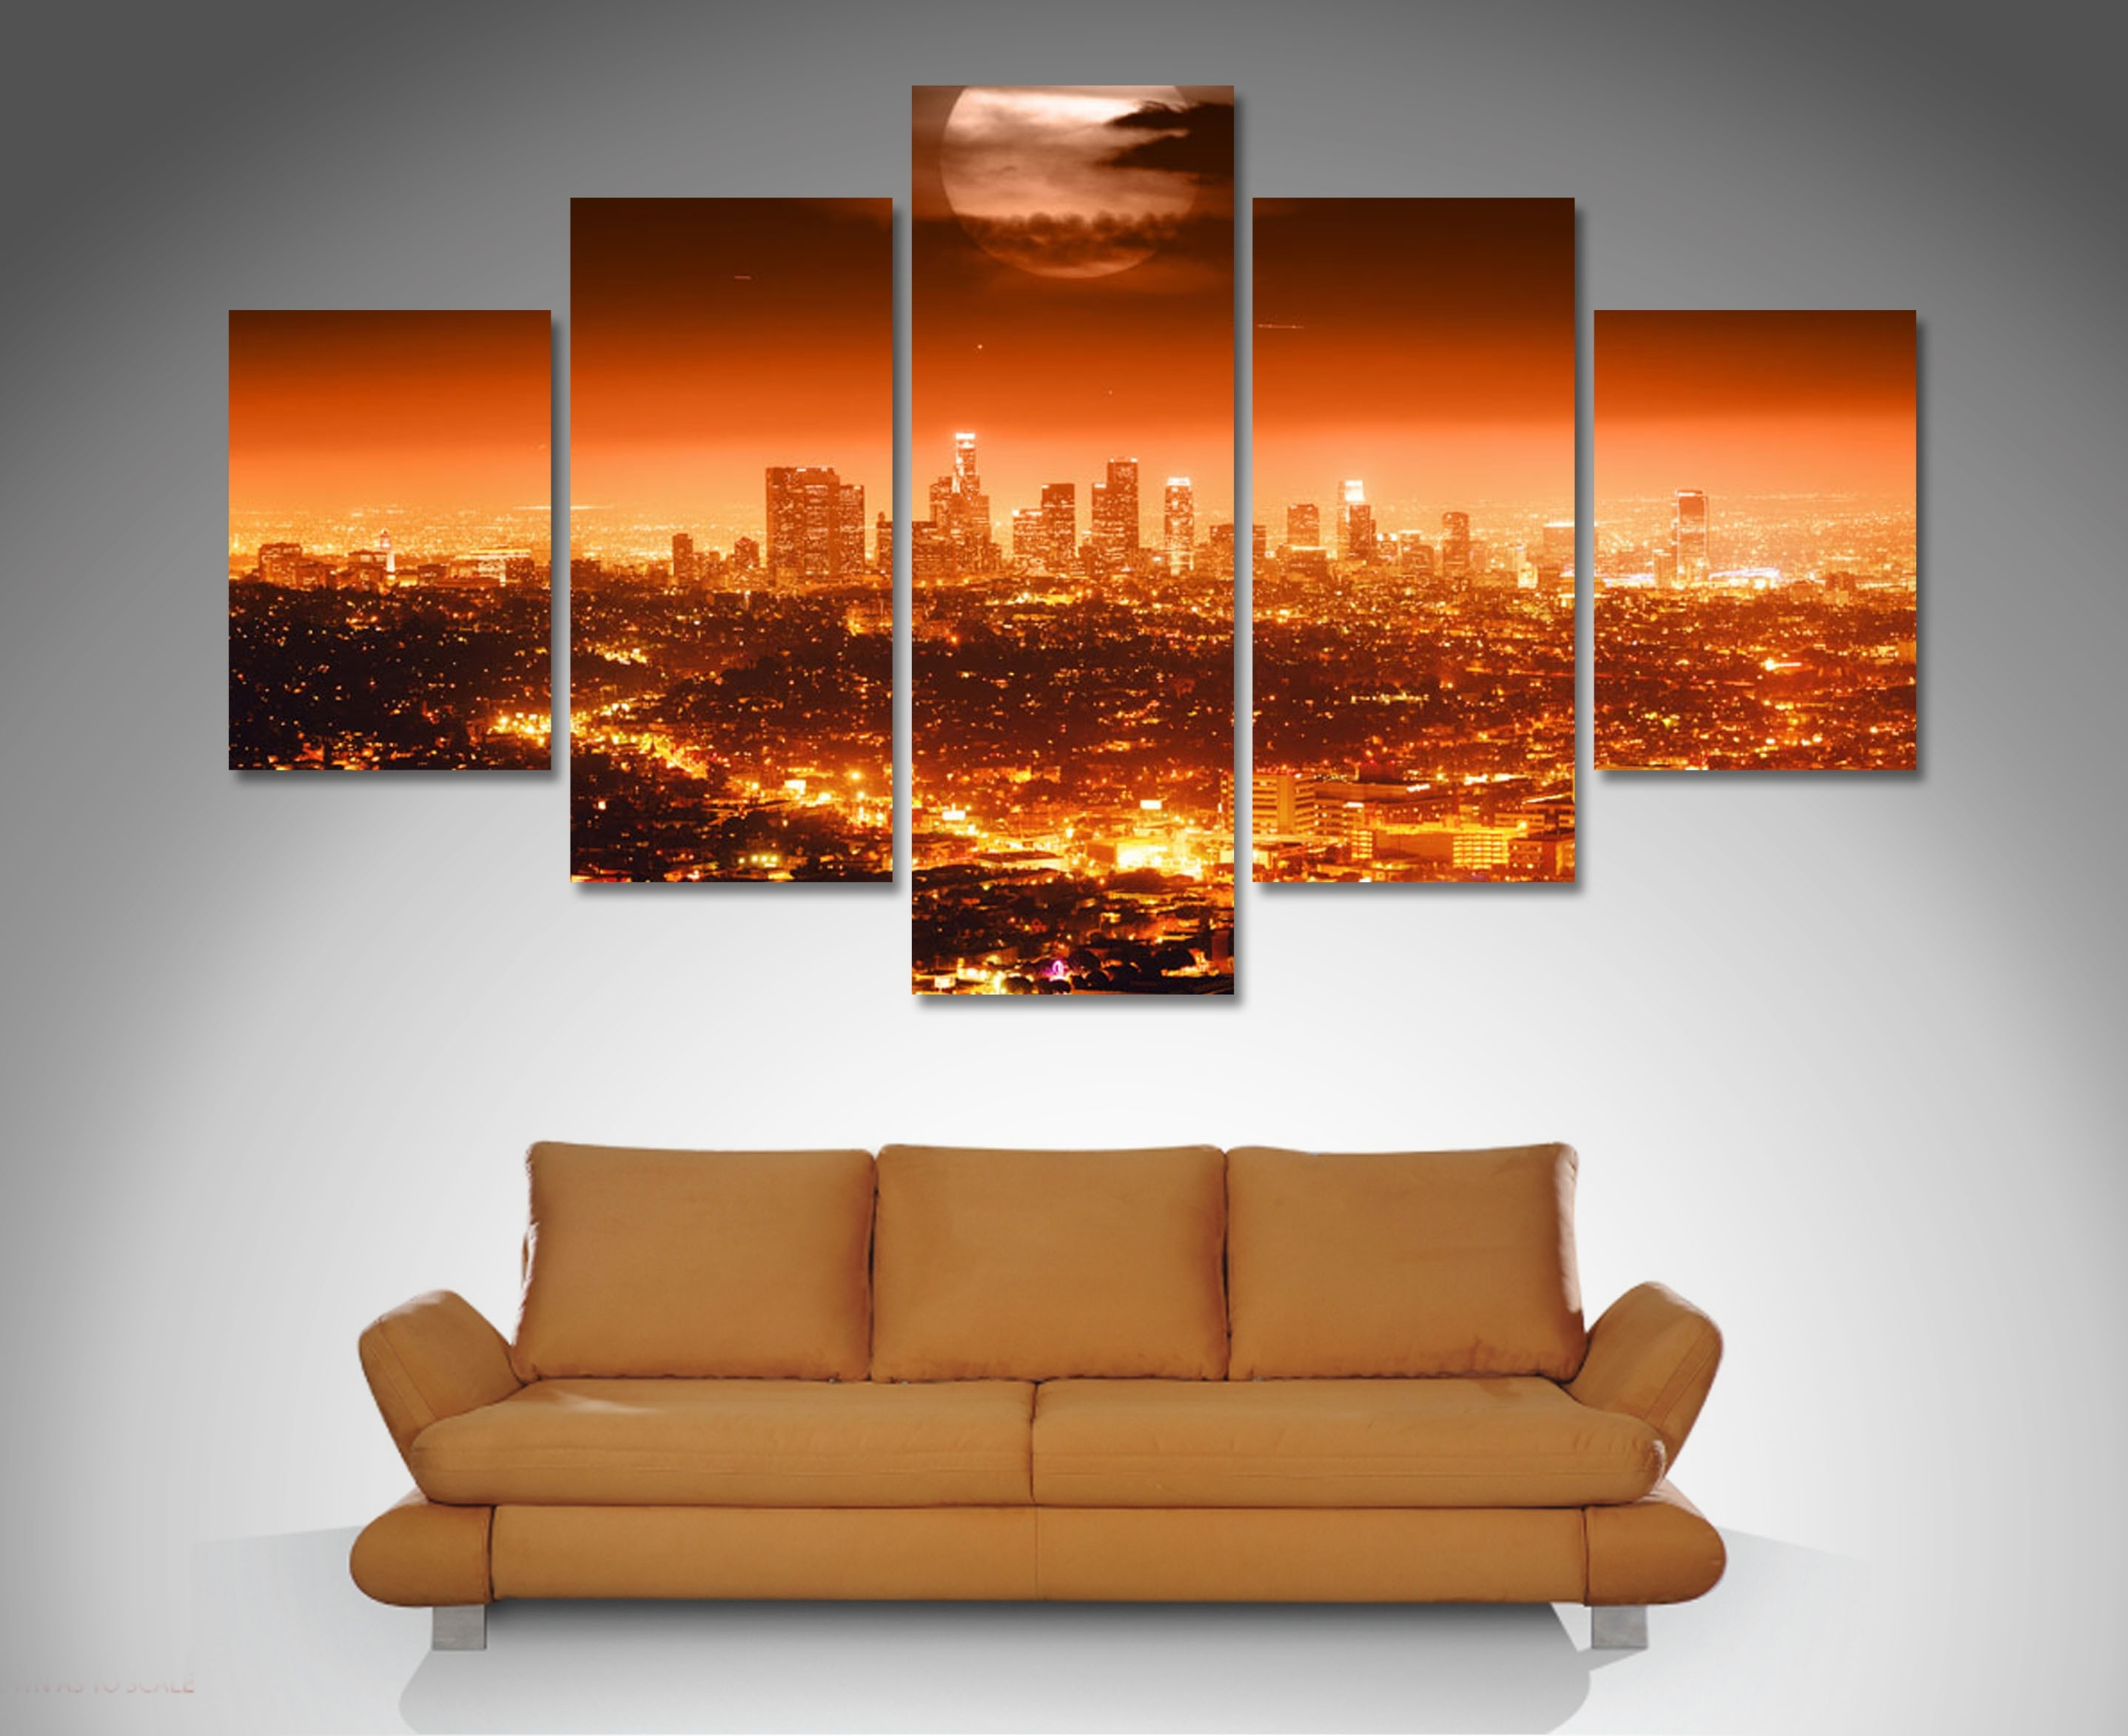 Los Angeles 5 Panel Wall Art Canvas Print In Most Recent Brisbane Canvas Wall Art (Gallery 13 of 15)